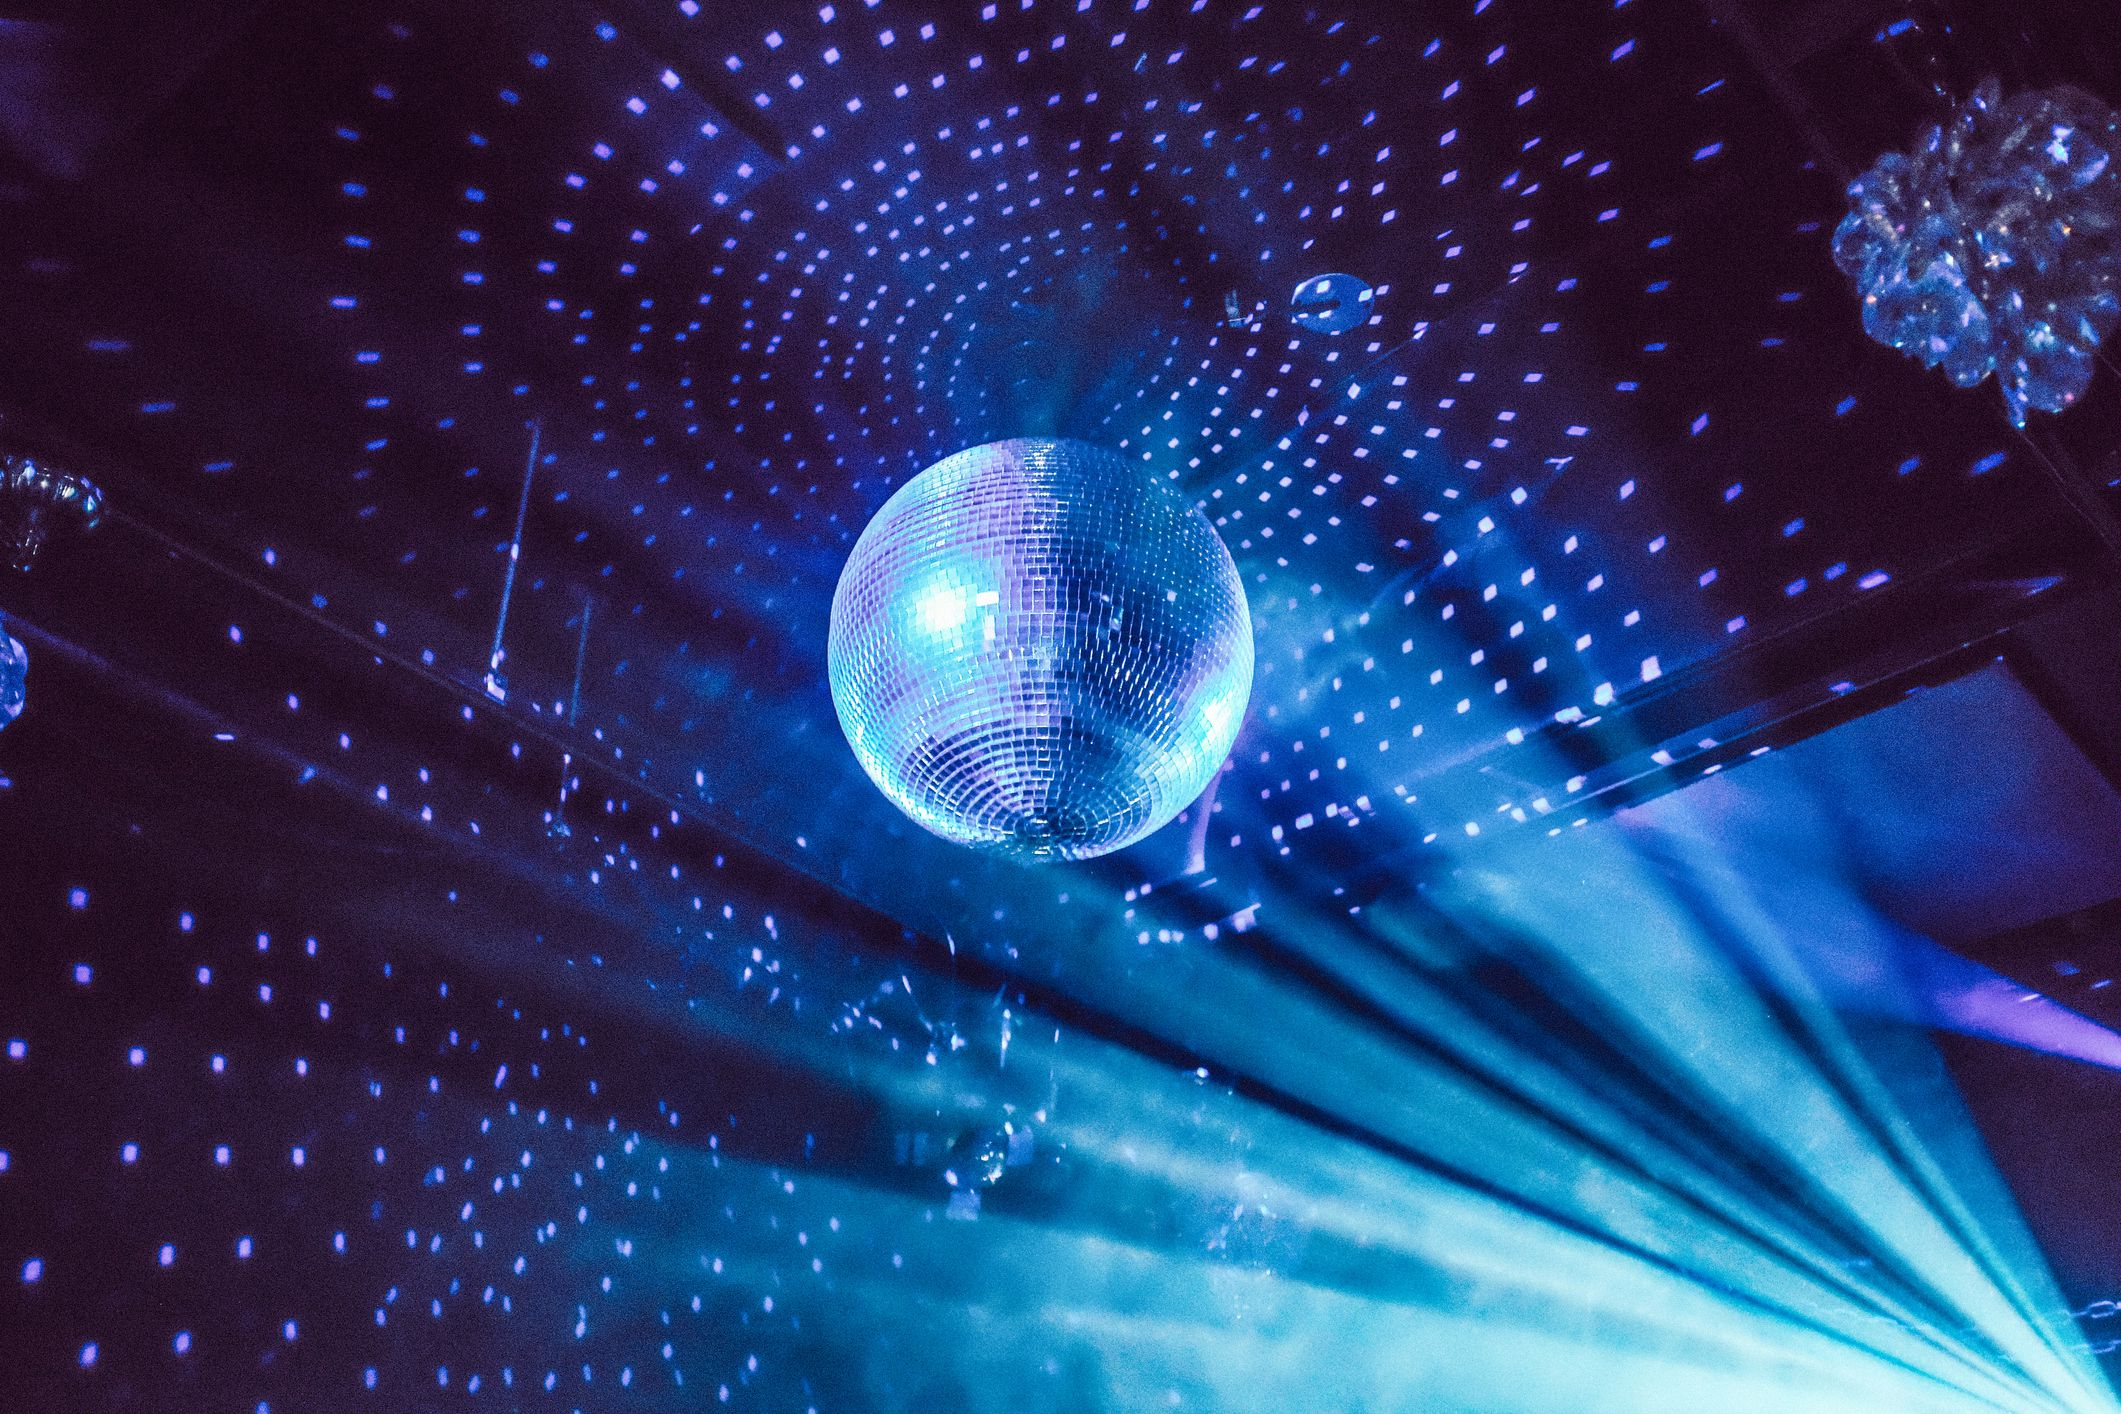 The Top 10 Worst Disco Songs